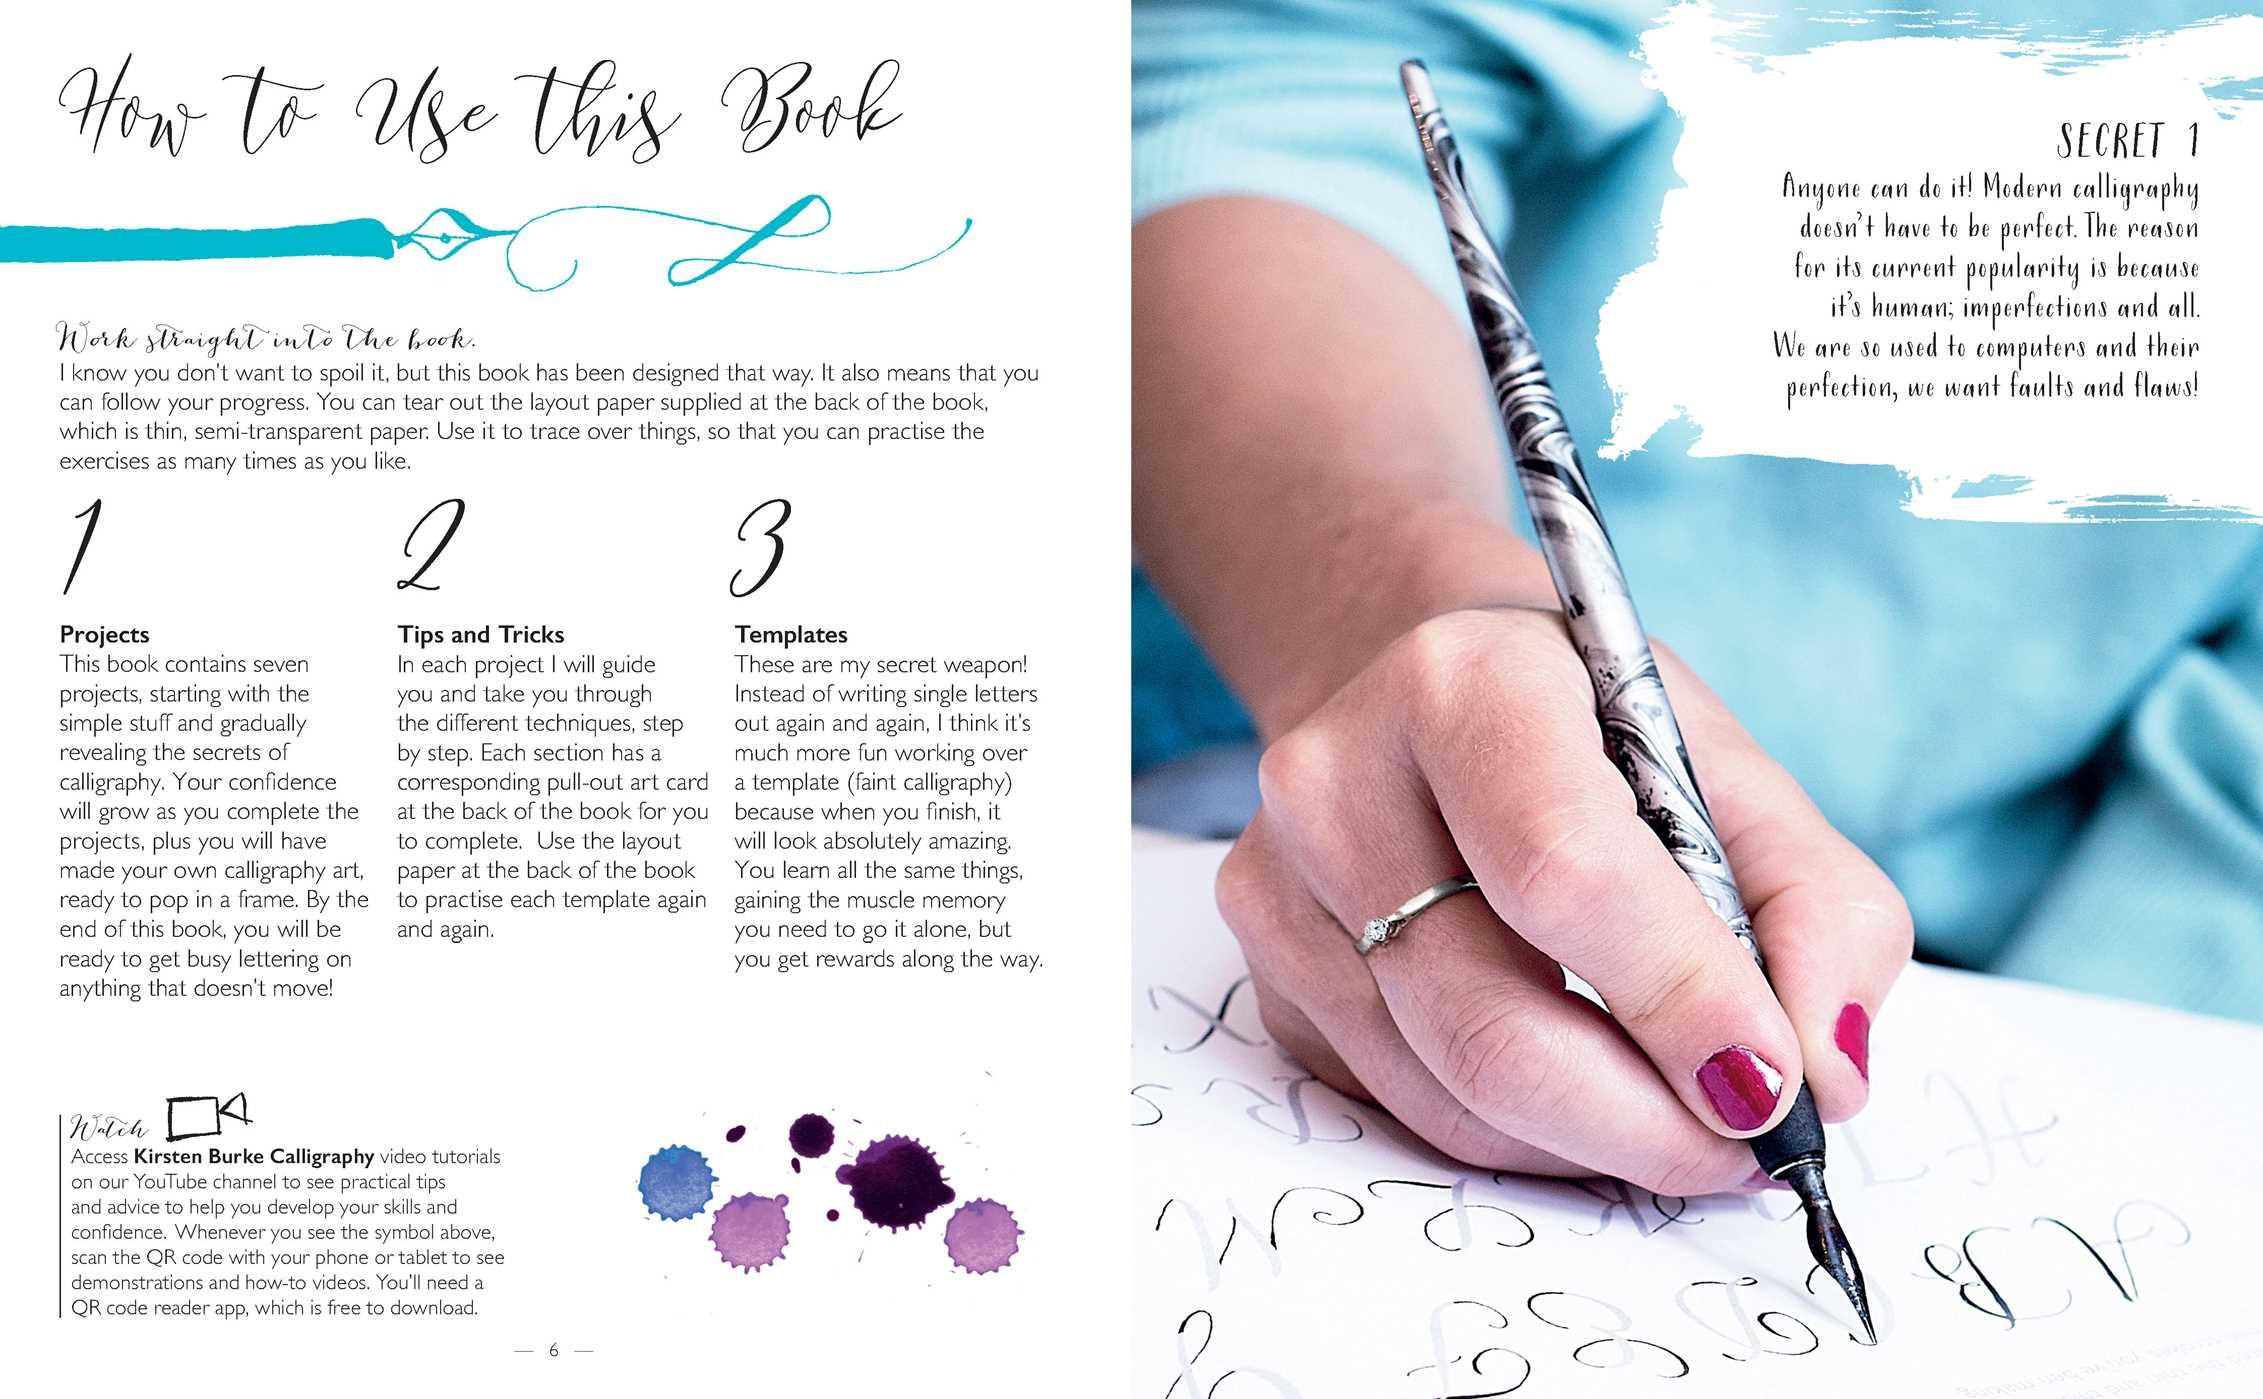 Secrets of modern calligraphy 9781681883823.in02